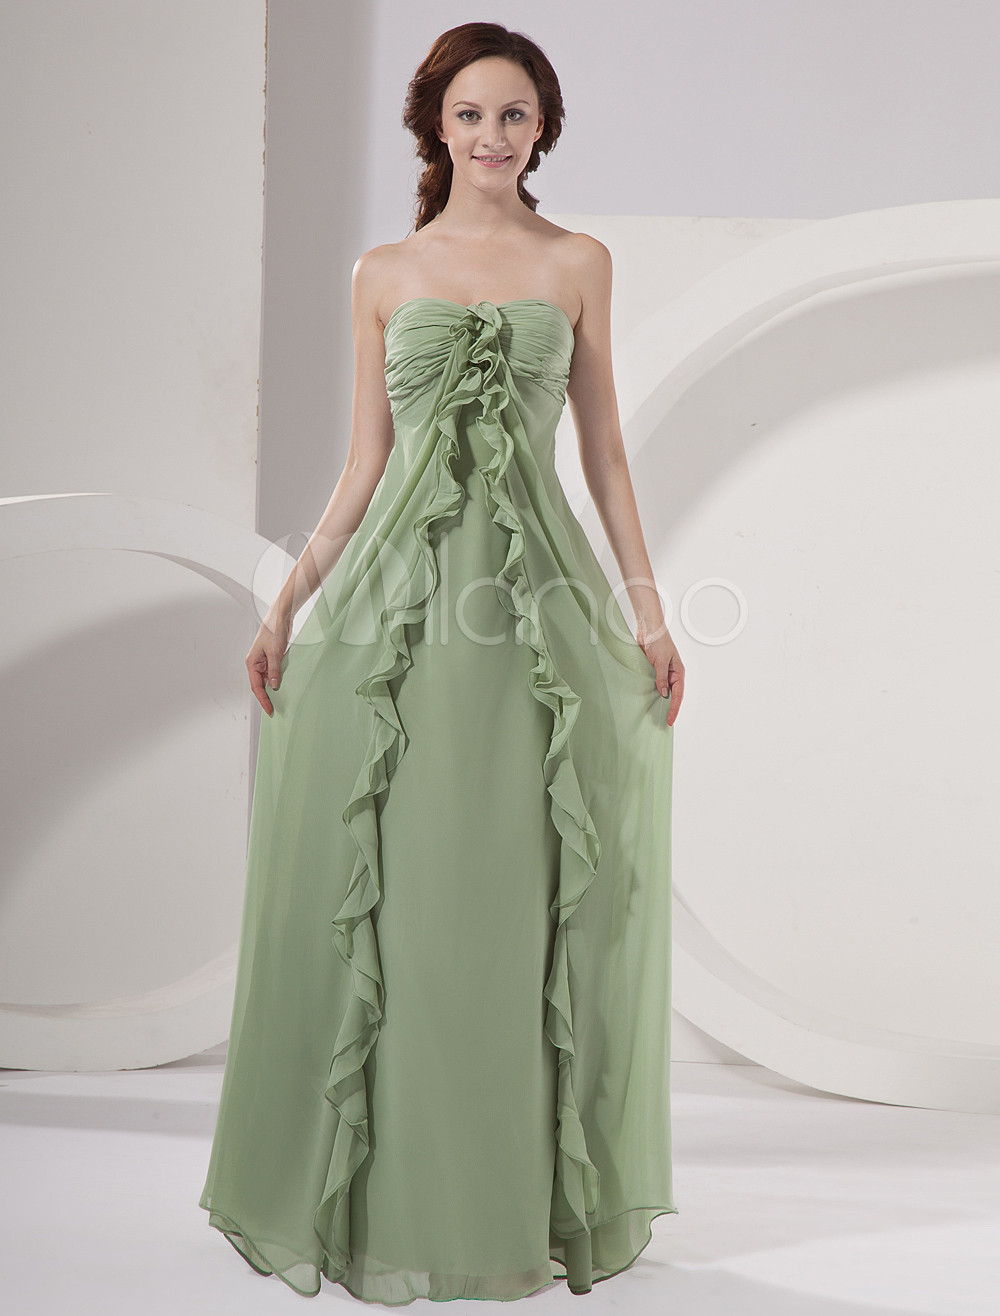 Army Green Cascading Ruffles Strapless Chiffon Bridesmaid Dress